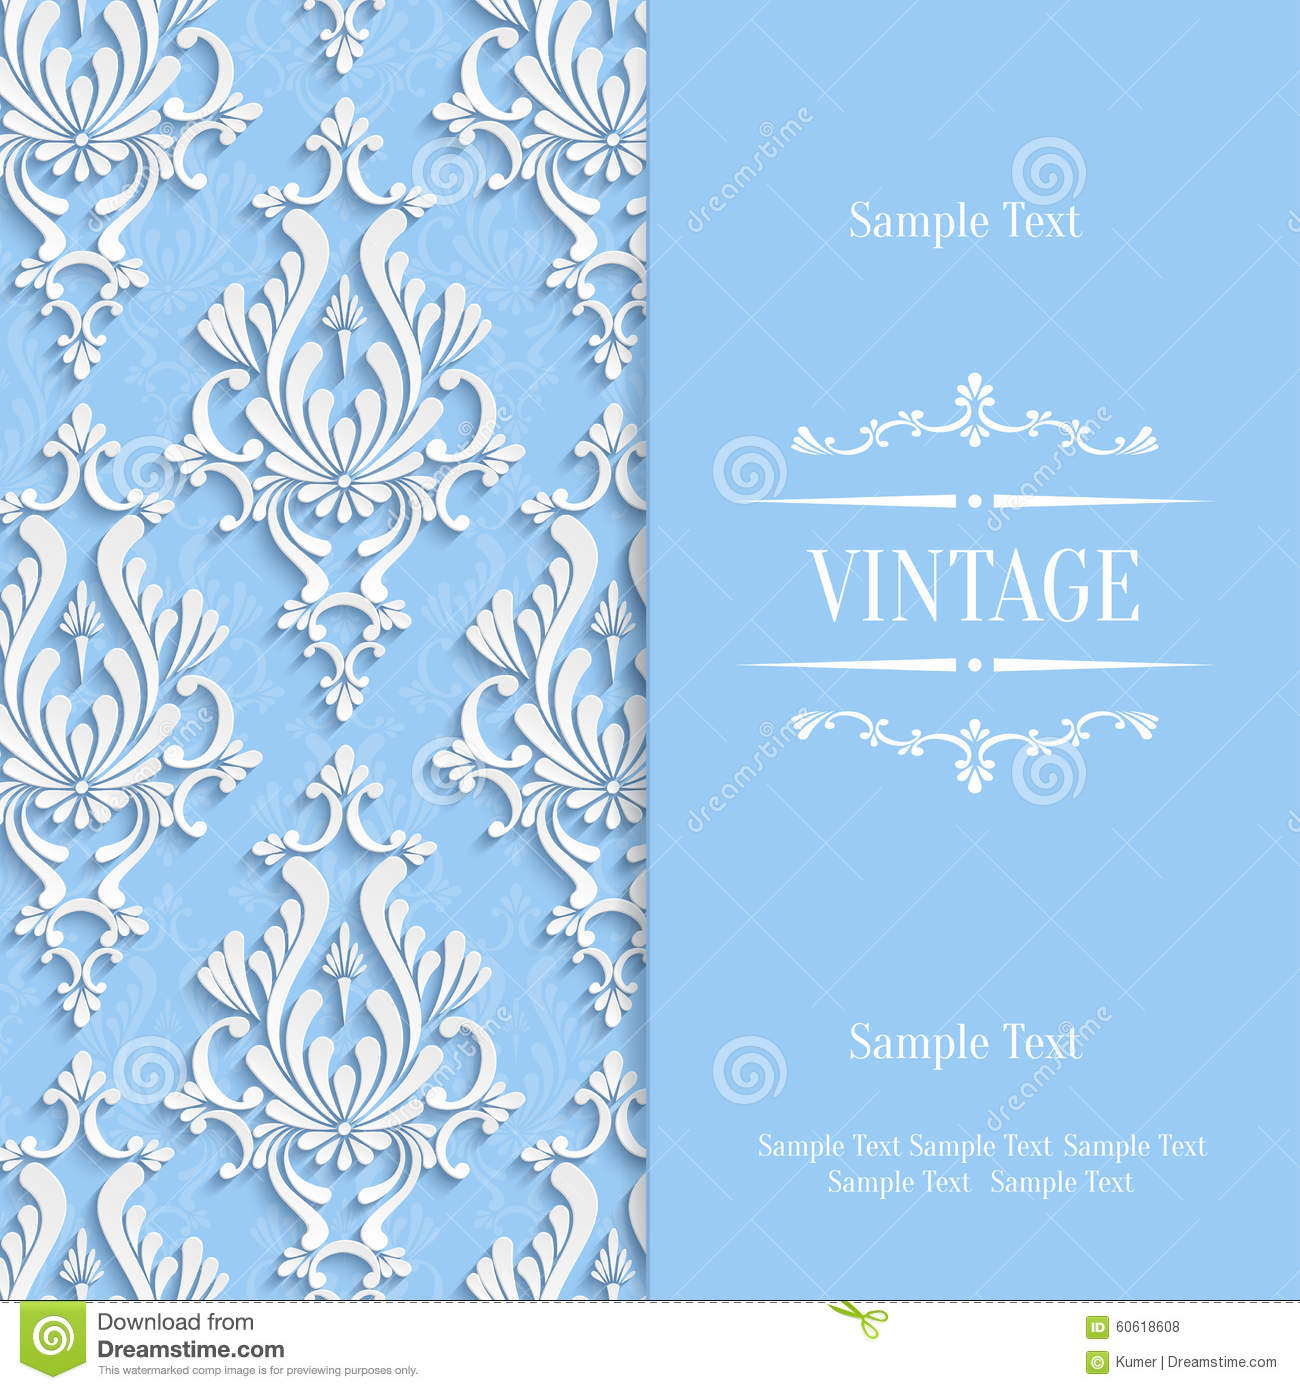 vector blue d vintage invitation card template with floral damask, invitation samples